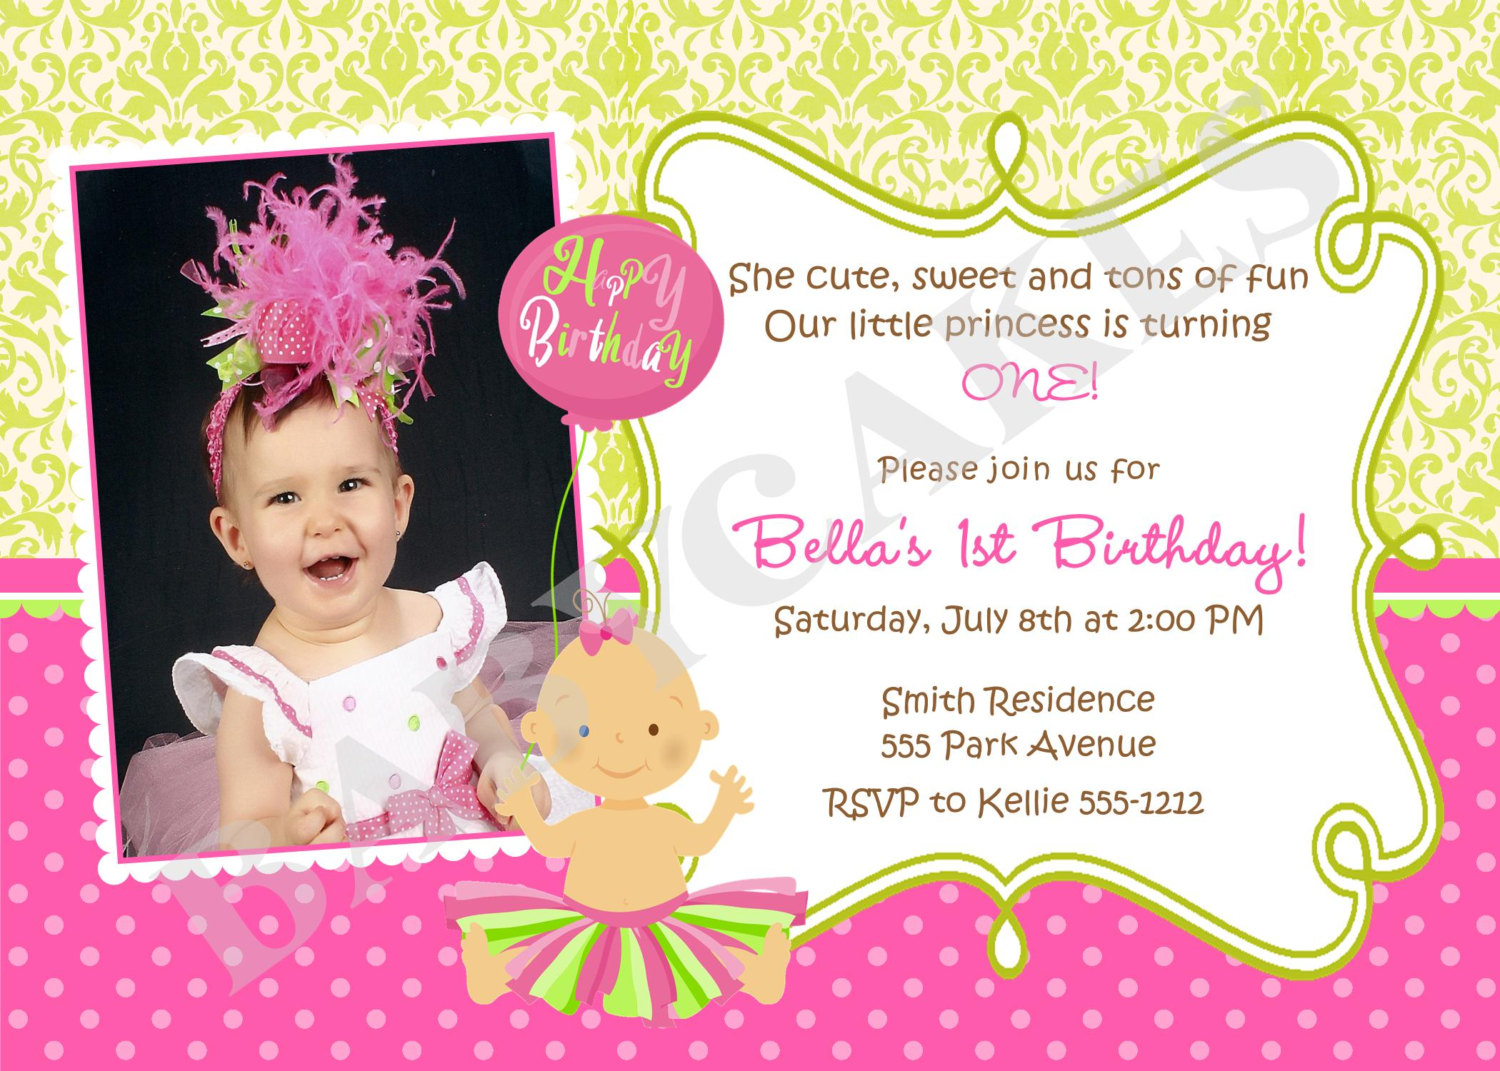 21st birthday invitation templates photoshop ; free_princess_birthday_invitations_template_9